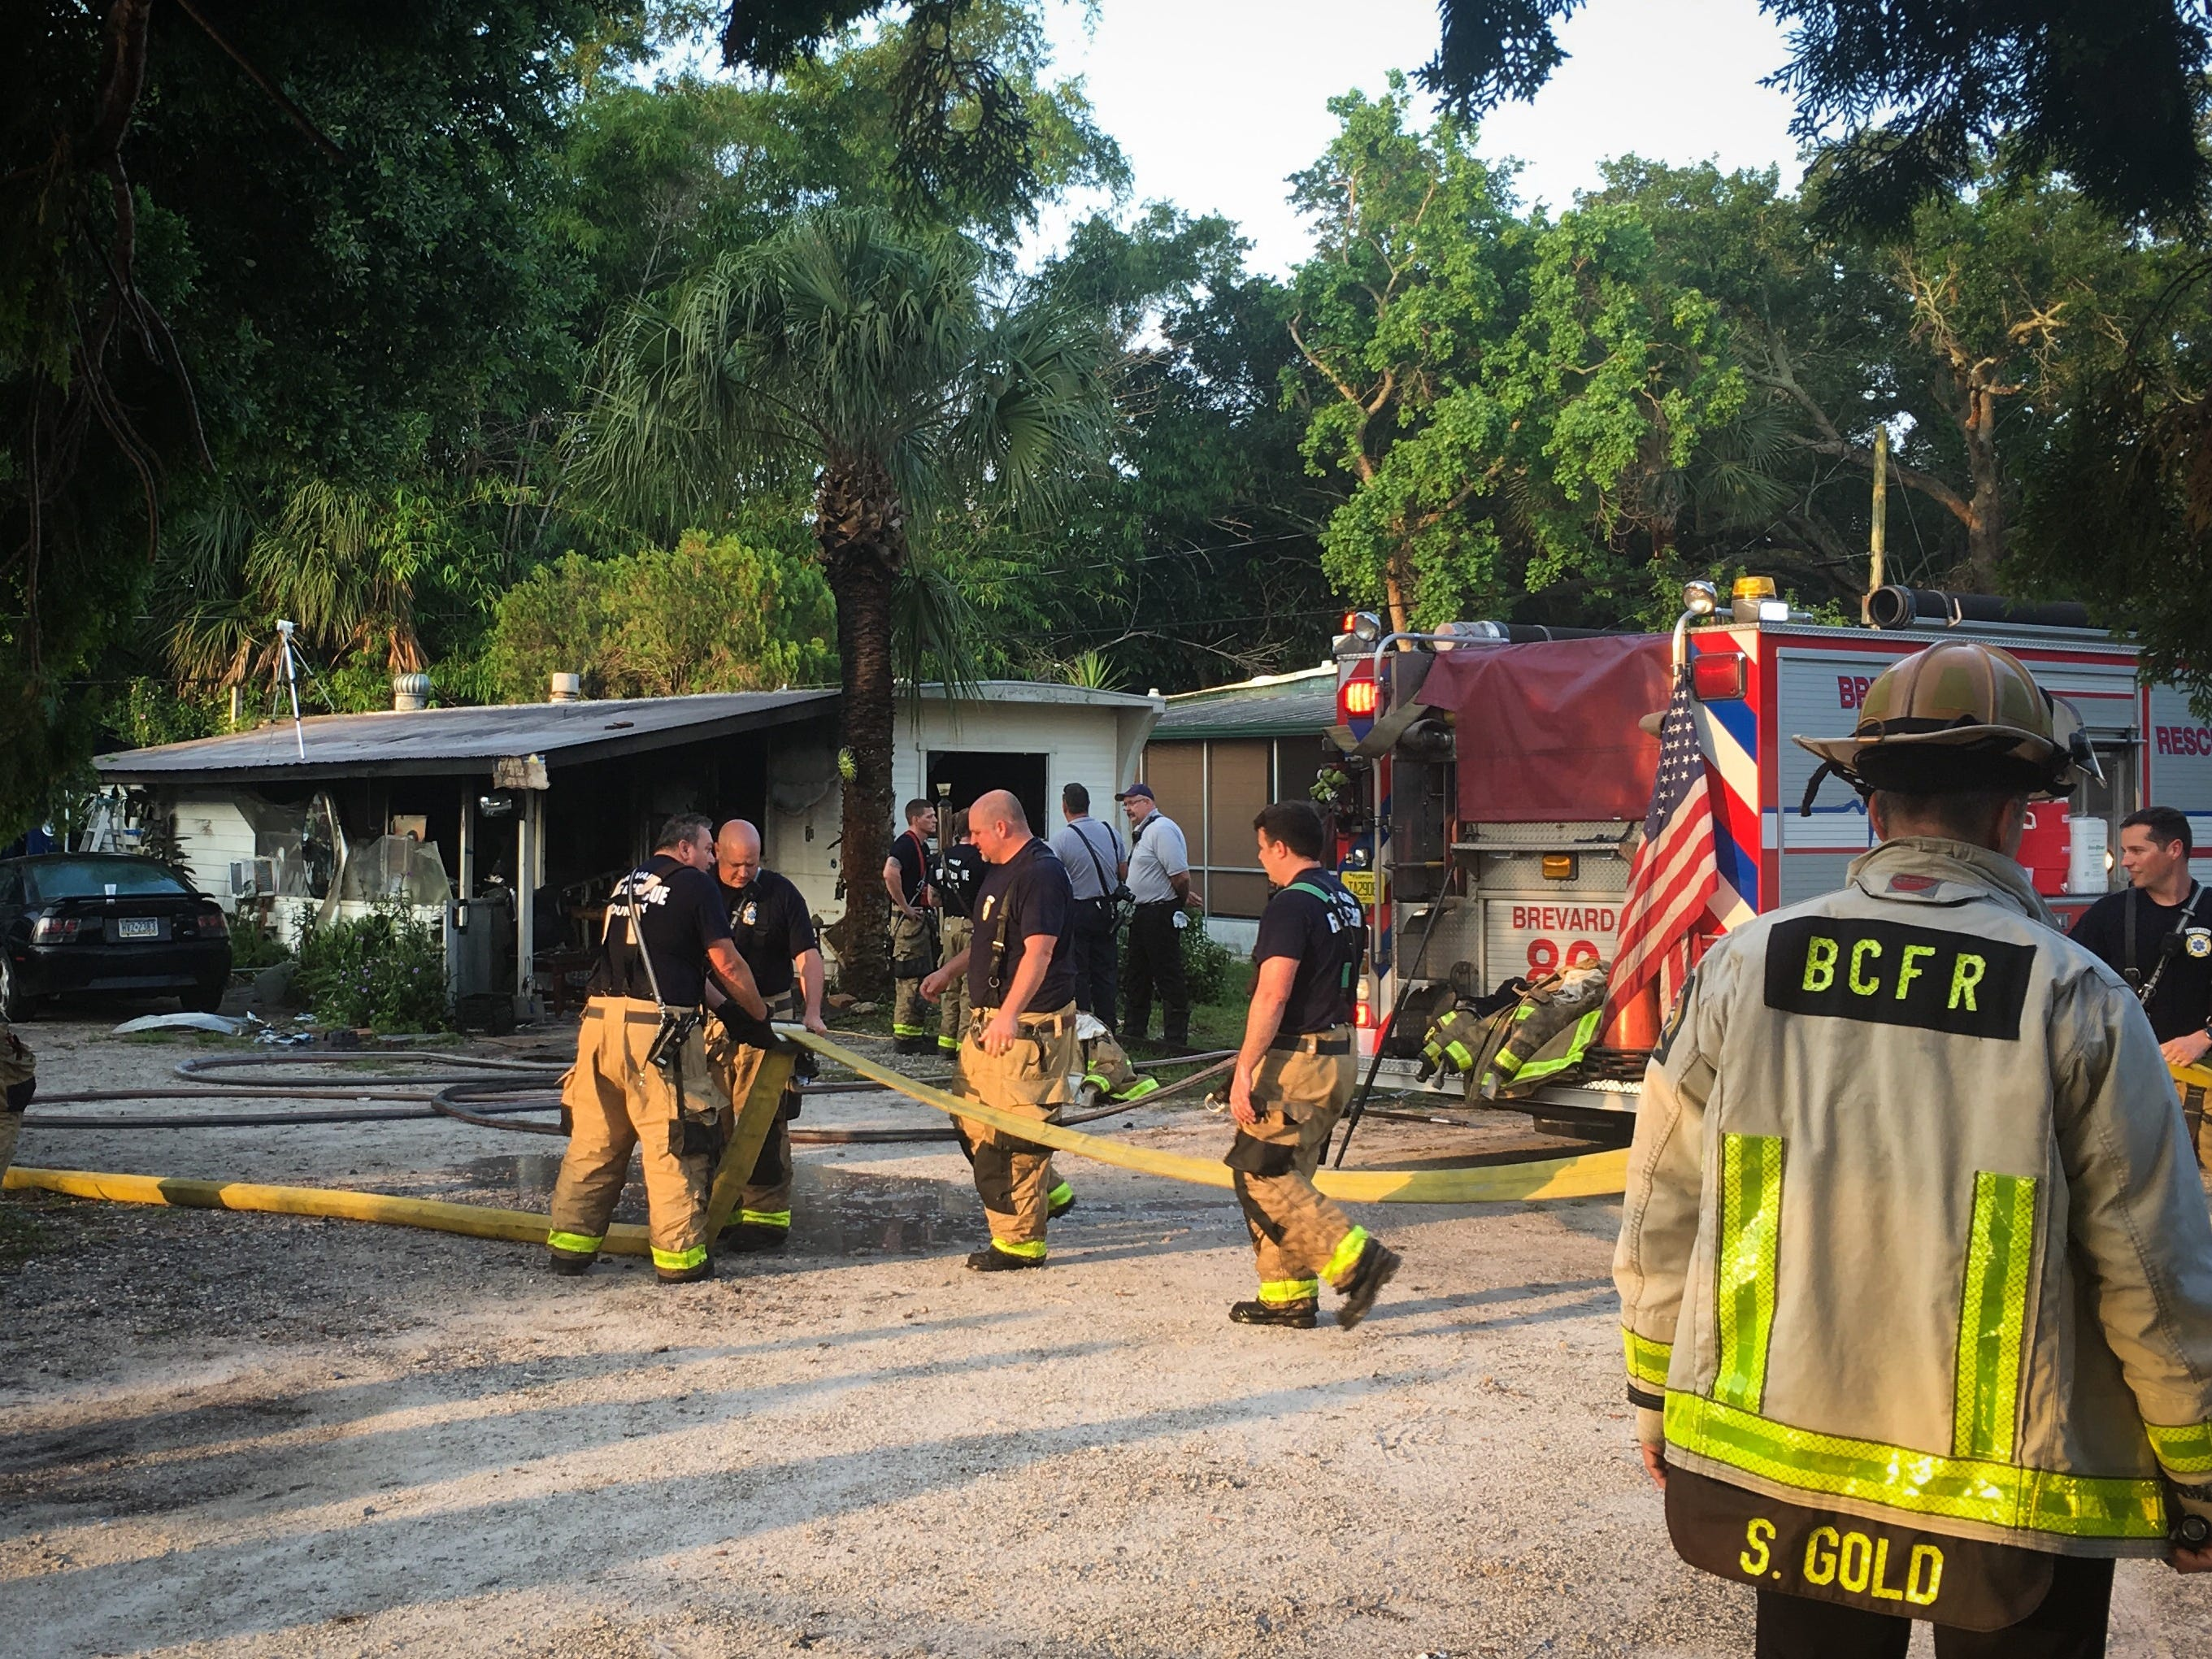 A fire was reported about 6:30 a.m. in a manufactured home in the 6300 block of U.S. 1 May 14, 2019.